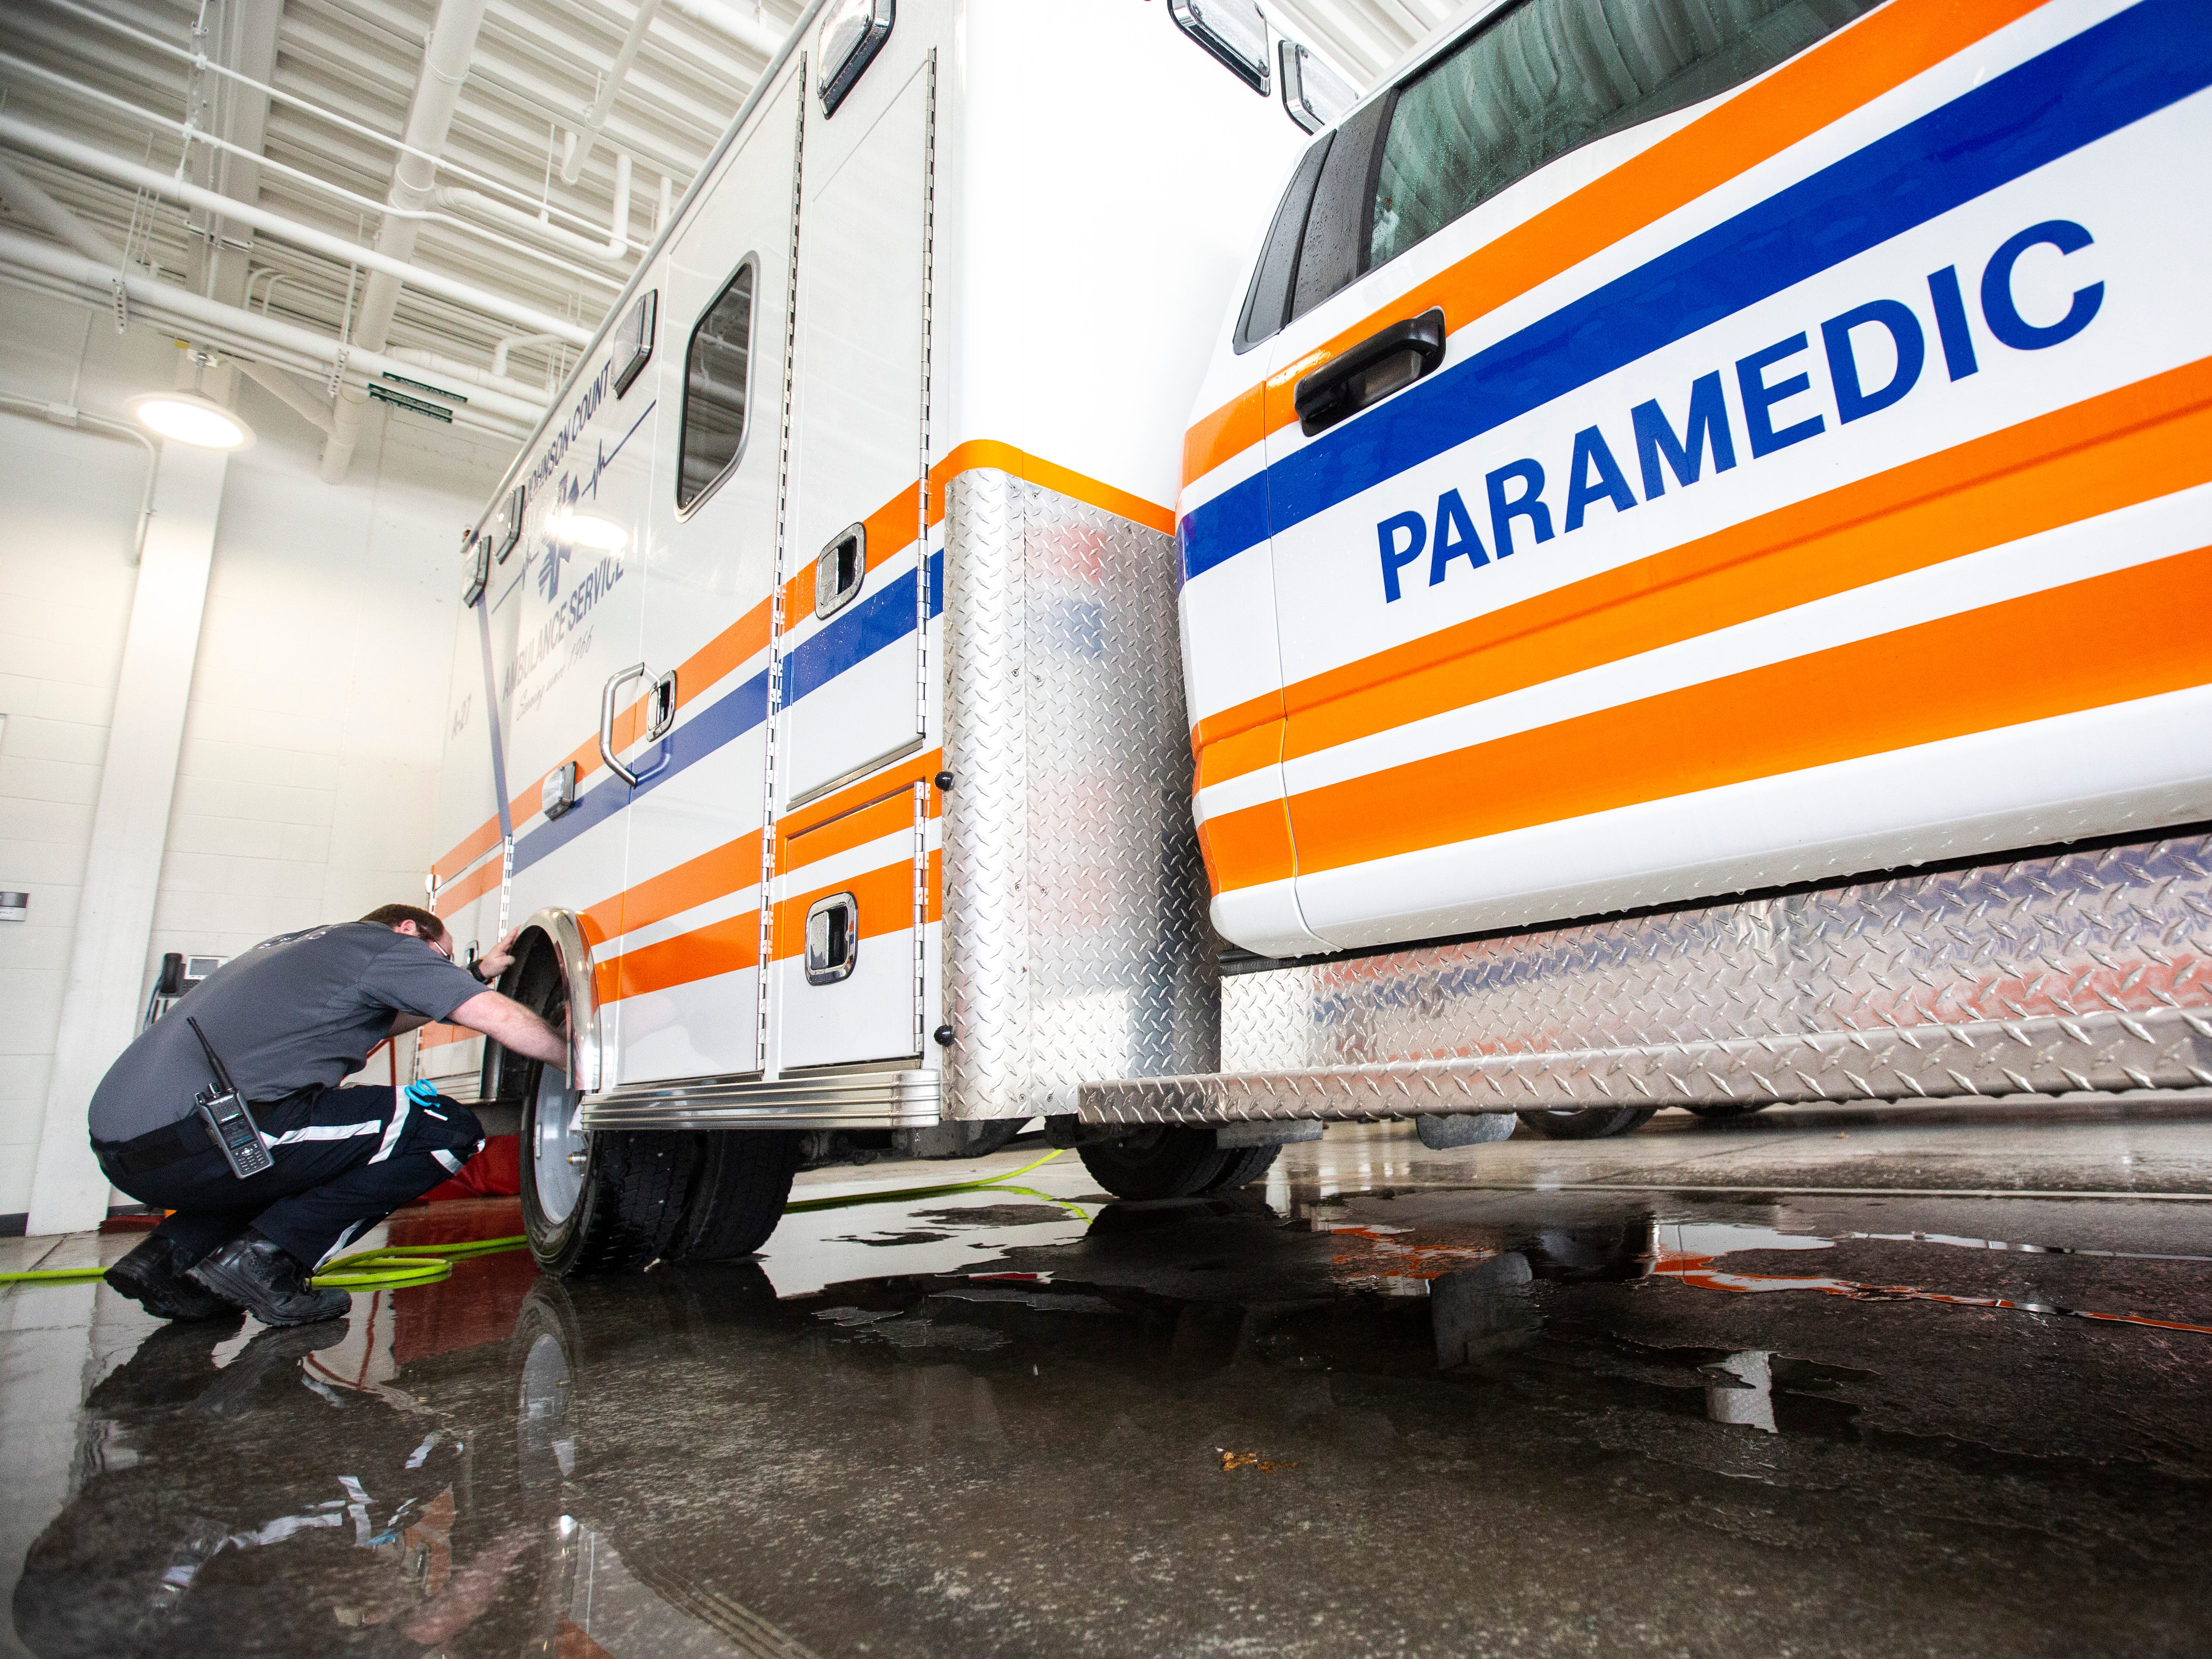 Zack Berger of the Johnson County Ambulance Service cleans their 2017 Ford F-450 truck on Wednesday, April 17, 2019, at the Johnson County Ambulance Services building at 808 S. Dubuque Street in Iowa City, Iowa.